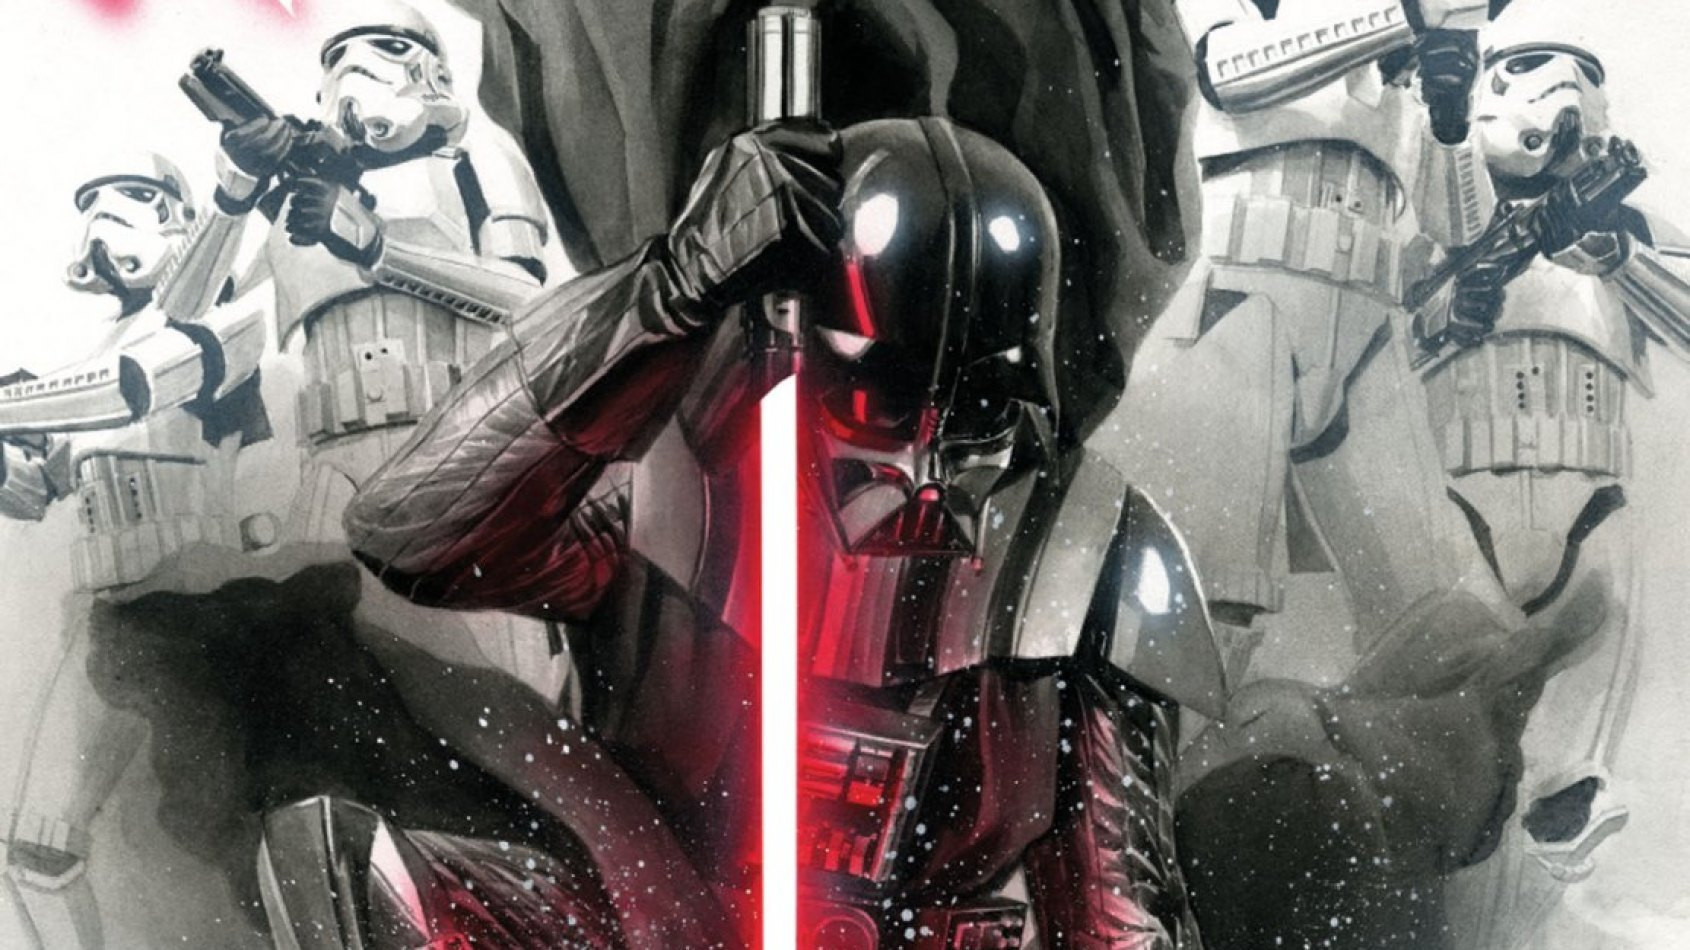 Panini : STAR WARS 005 s'offre une couverture collector pour Angoulême